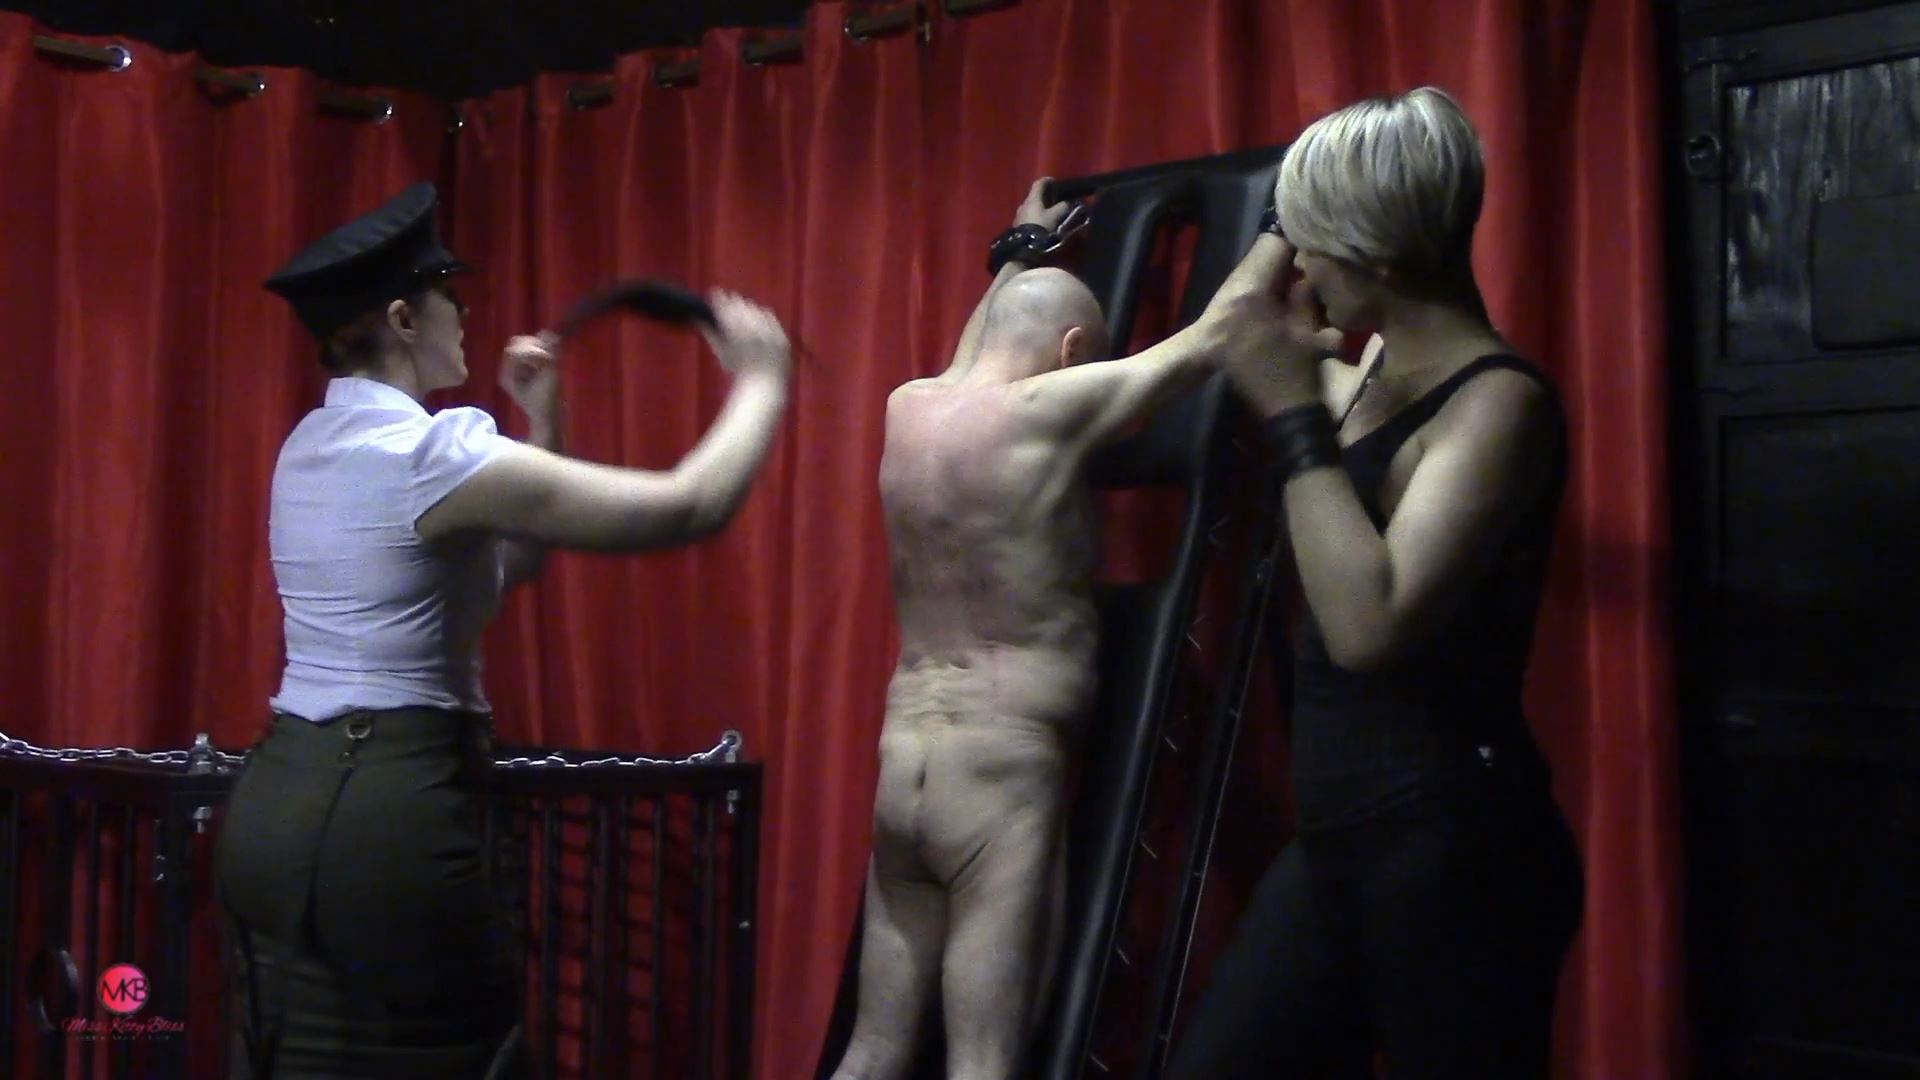 Kinky Kurdy Scratched & Paddled - MISS KITTY BLISS - FULL HD/1080p/MP4